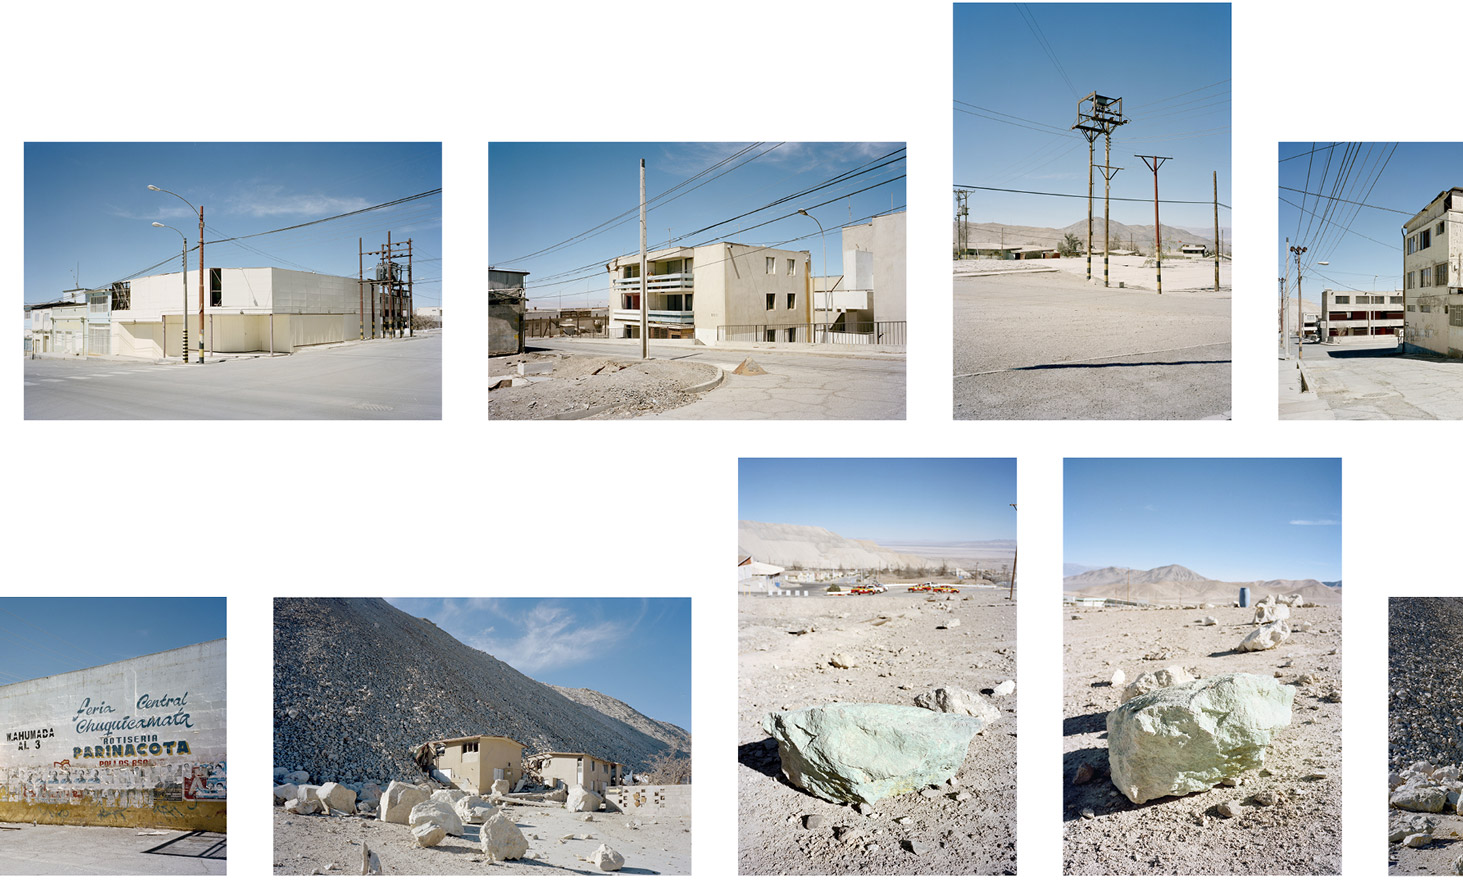 From the series 'Miss Chuquicamata, the Slag', Atacama Desert, Chile, 2012 © Ignacio Acosta